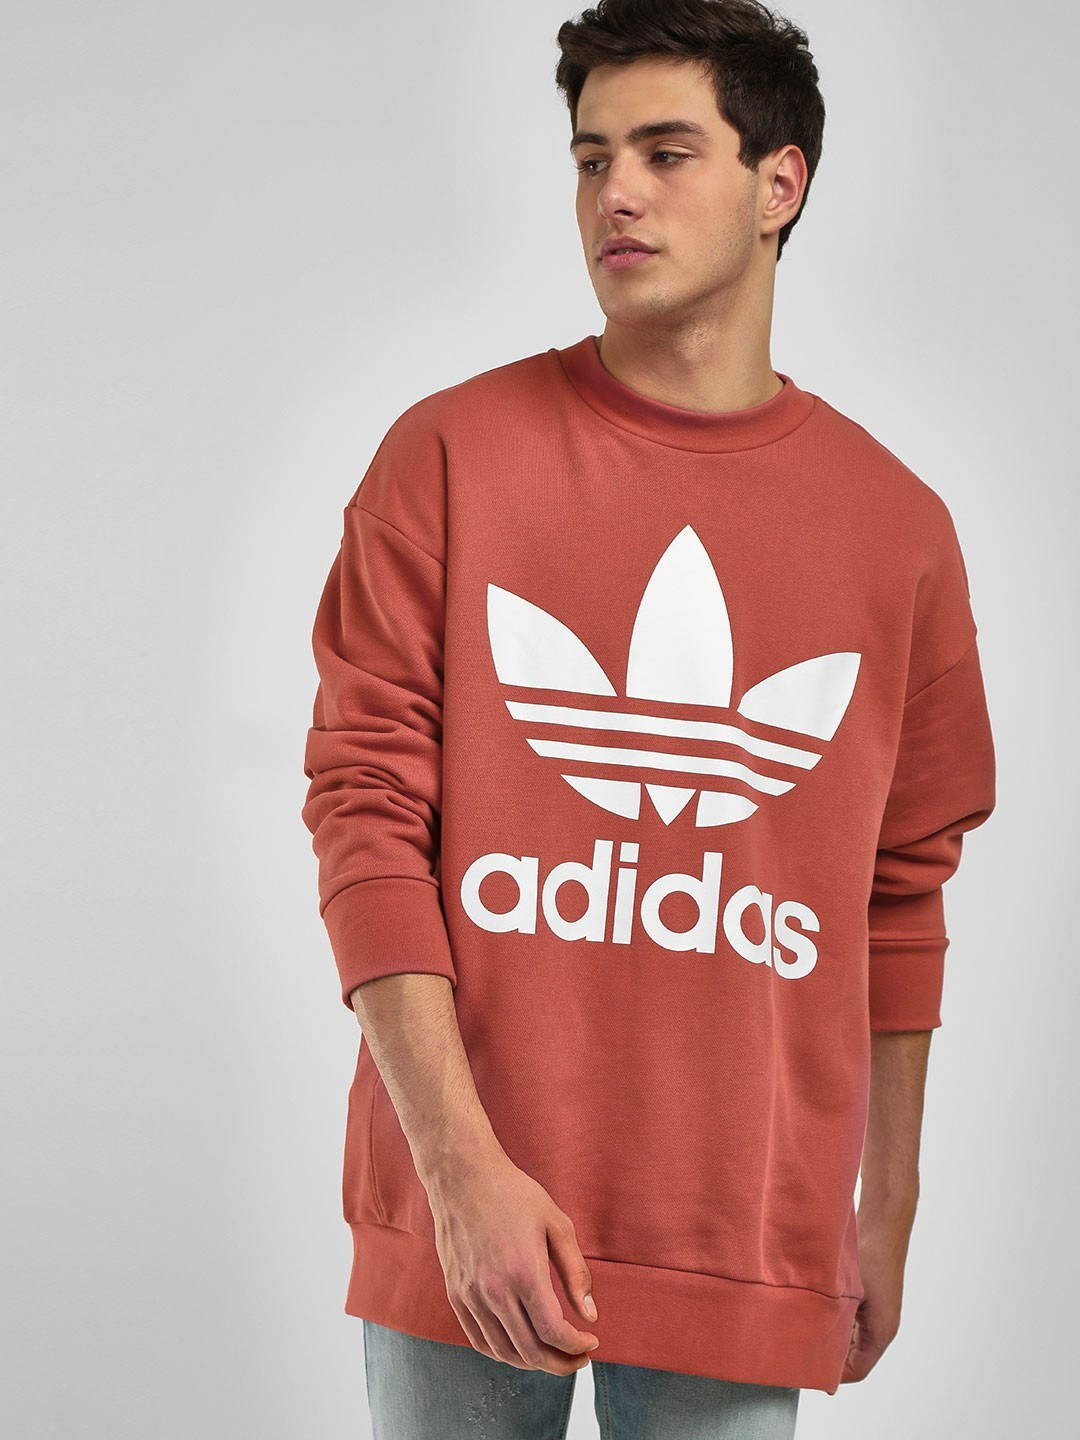 Adidas Originals Orange Oversize Trefoil Sweatshirt 1